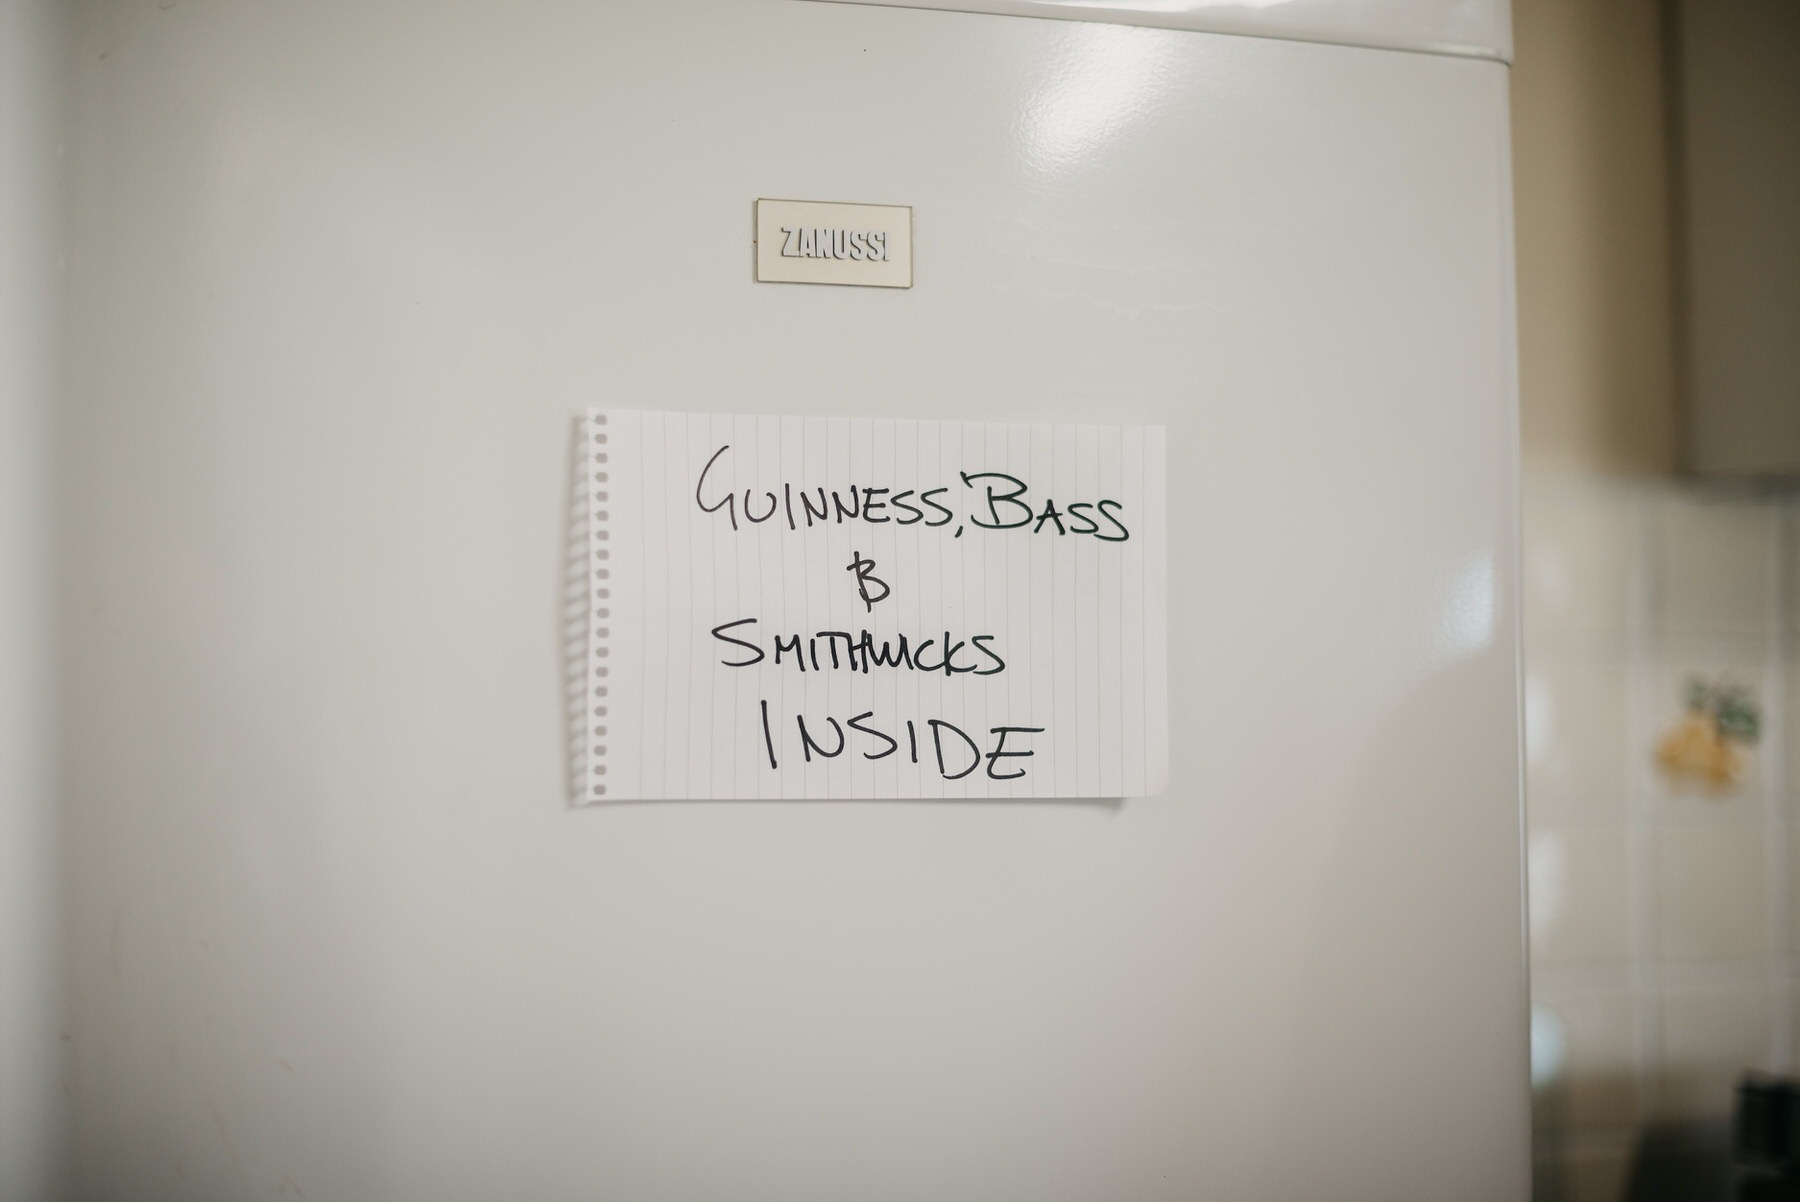 A sign on a fridge